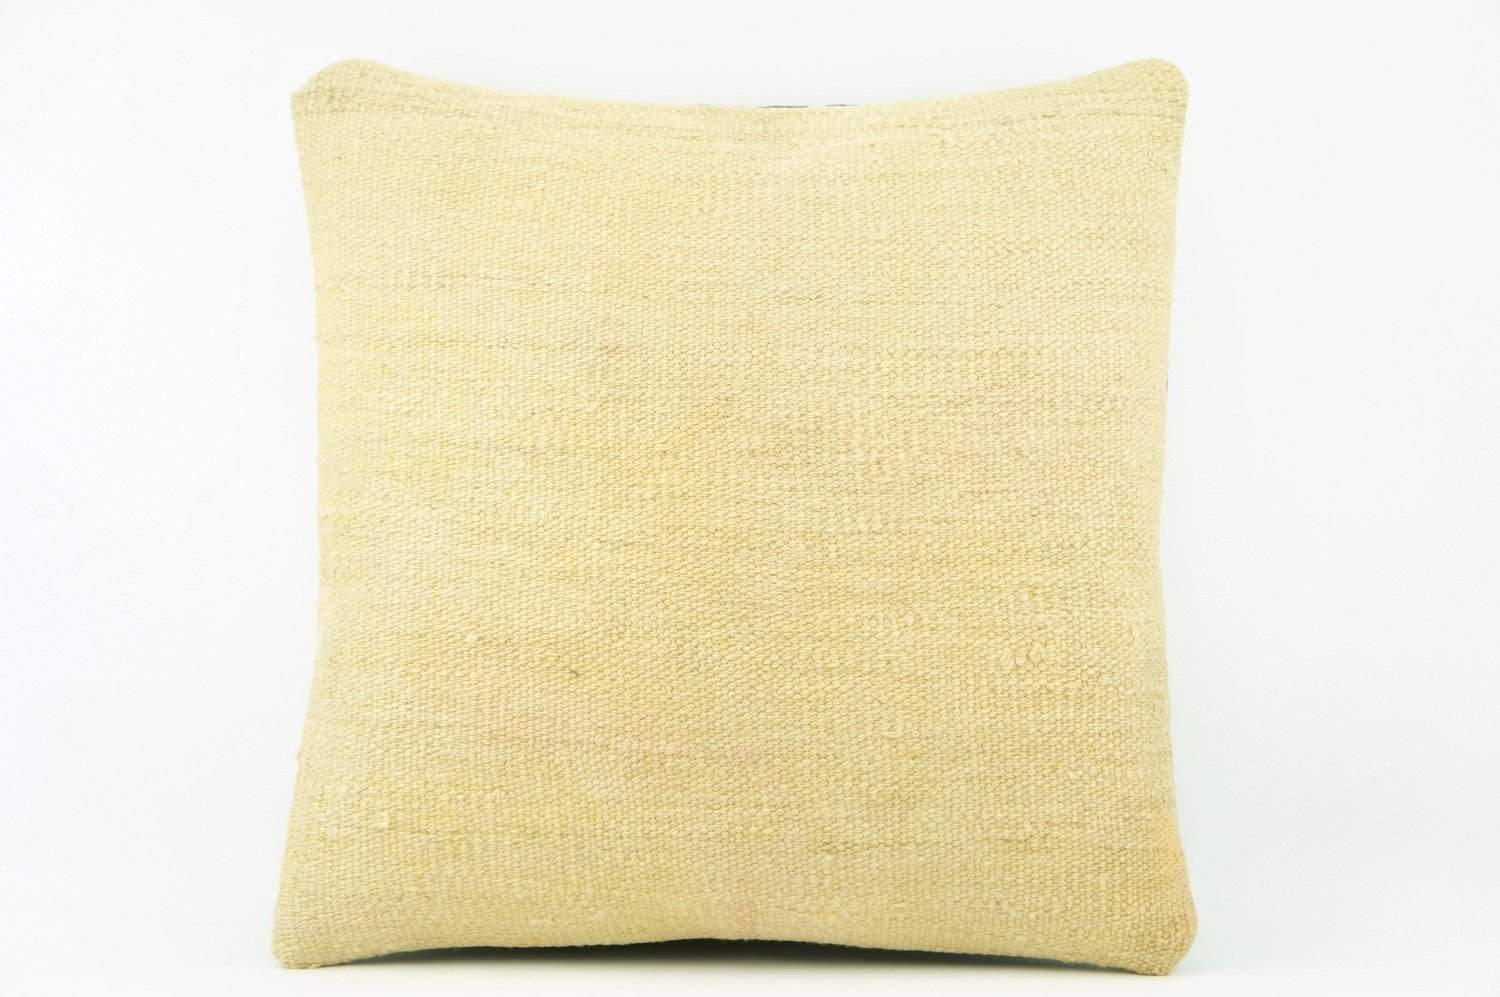 Cream hemp  Kilim  pillow case 16,  throw  cushion, ethnic decor,  Mediterranean  decor,  2200 - kilimpillowstore  - 1